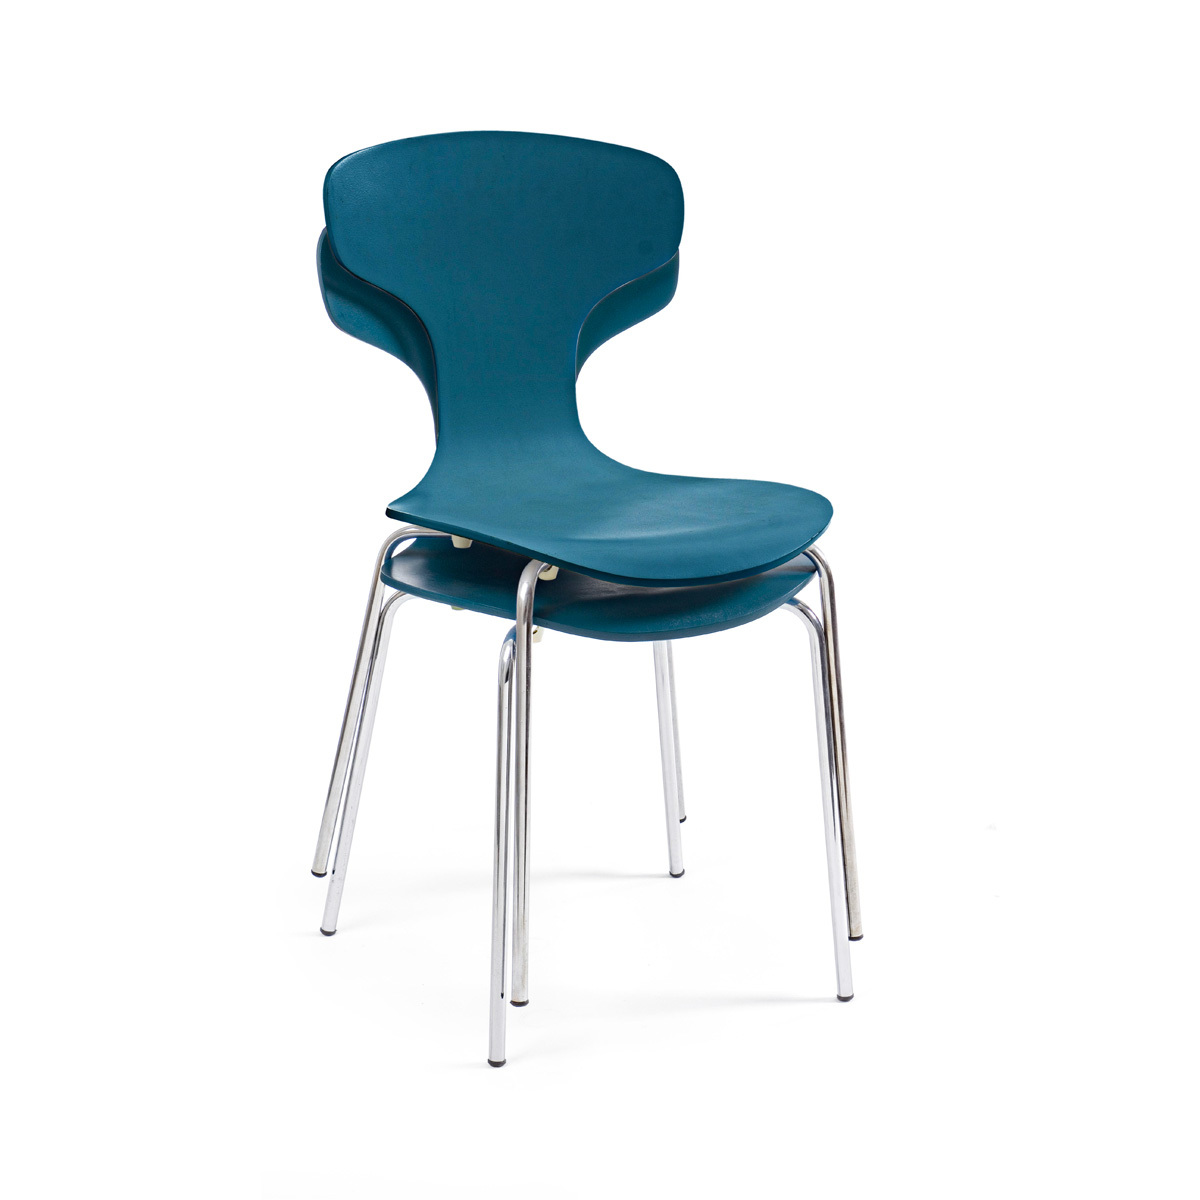 Photos 4: Bizzotto Chair in metal and wood - cobalt 0731624